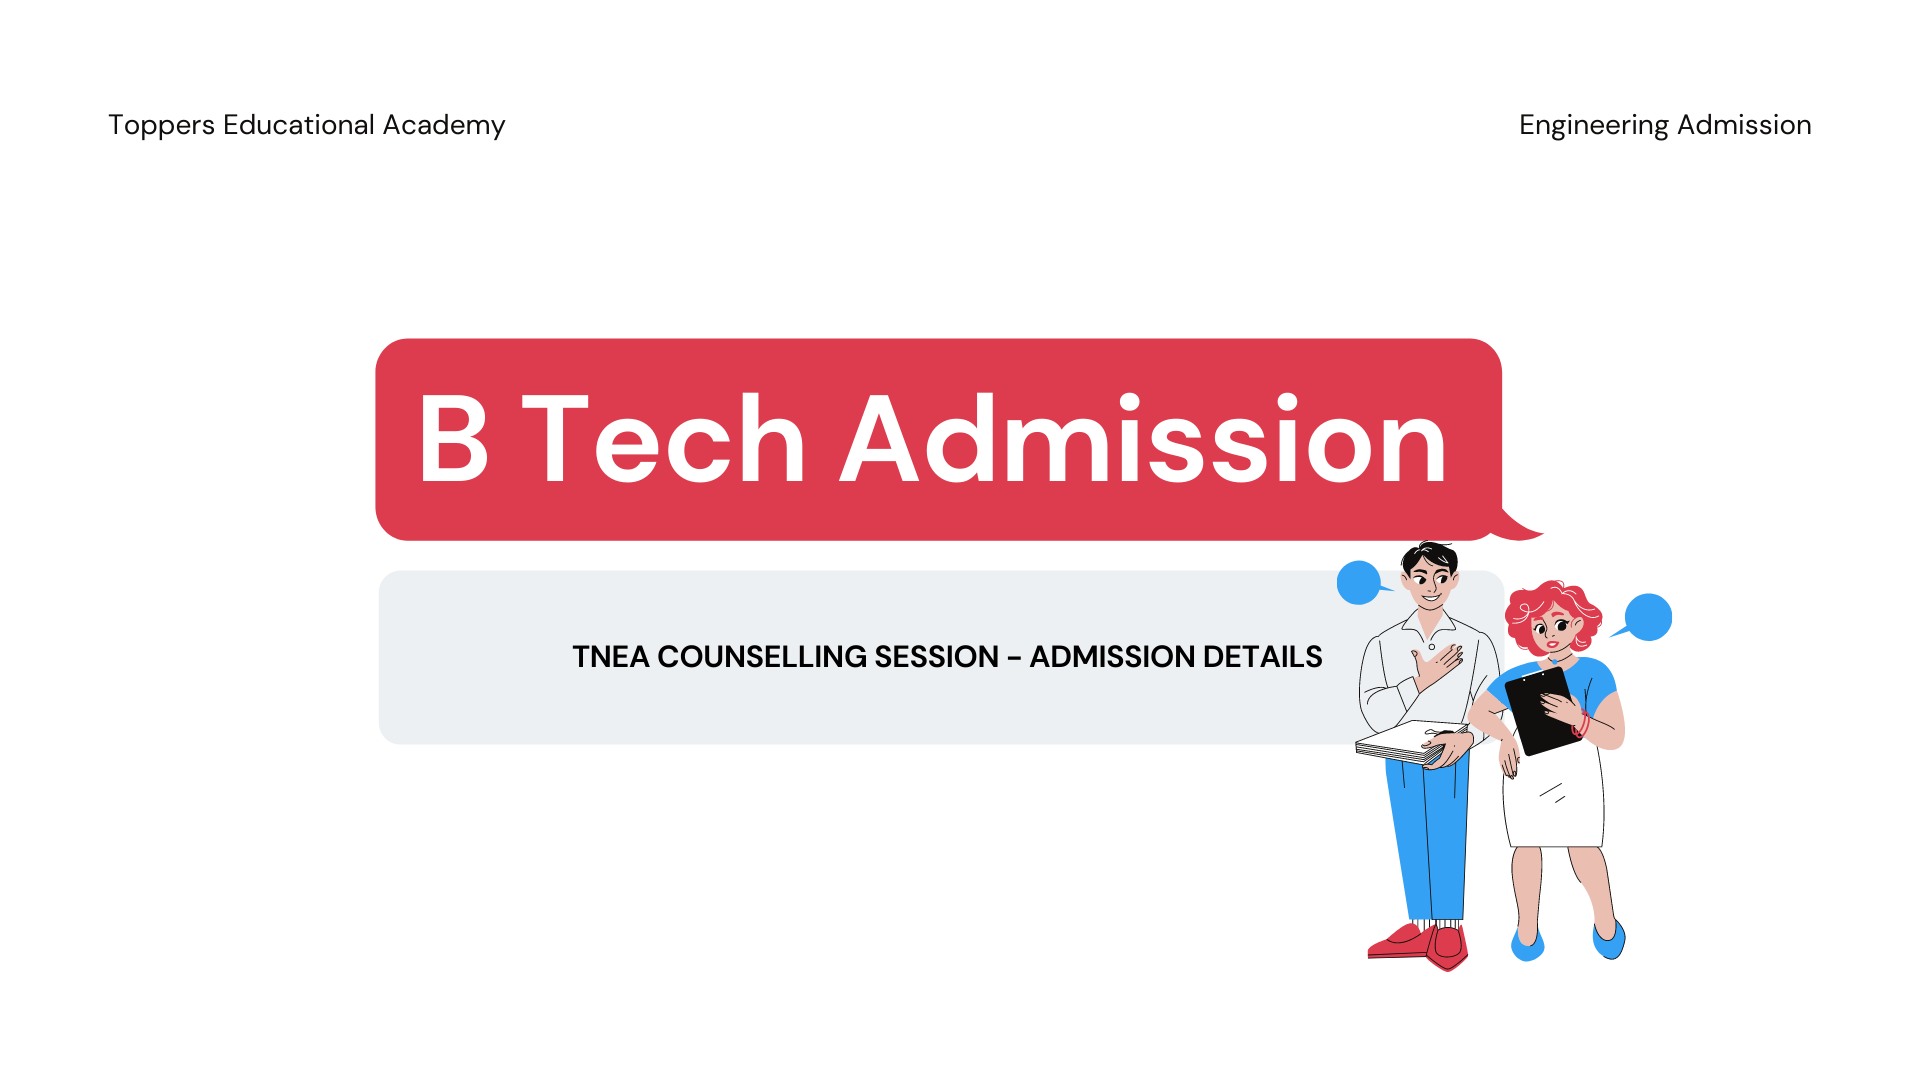 B Tech Admission in Top engineering colleges in Tamilnadu